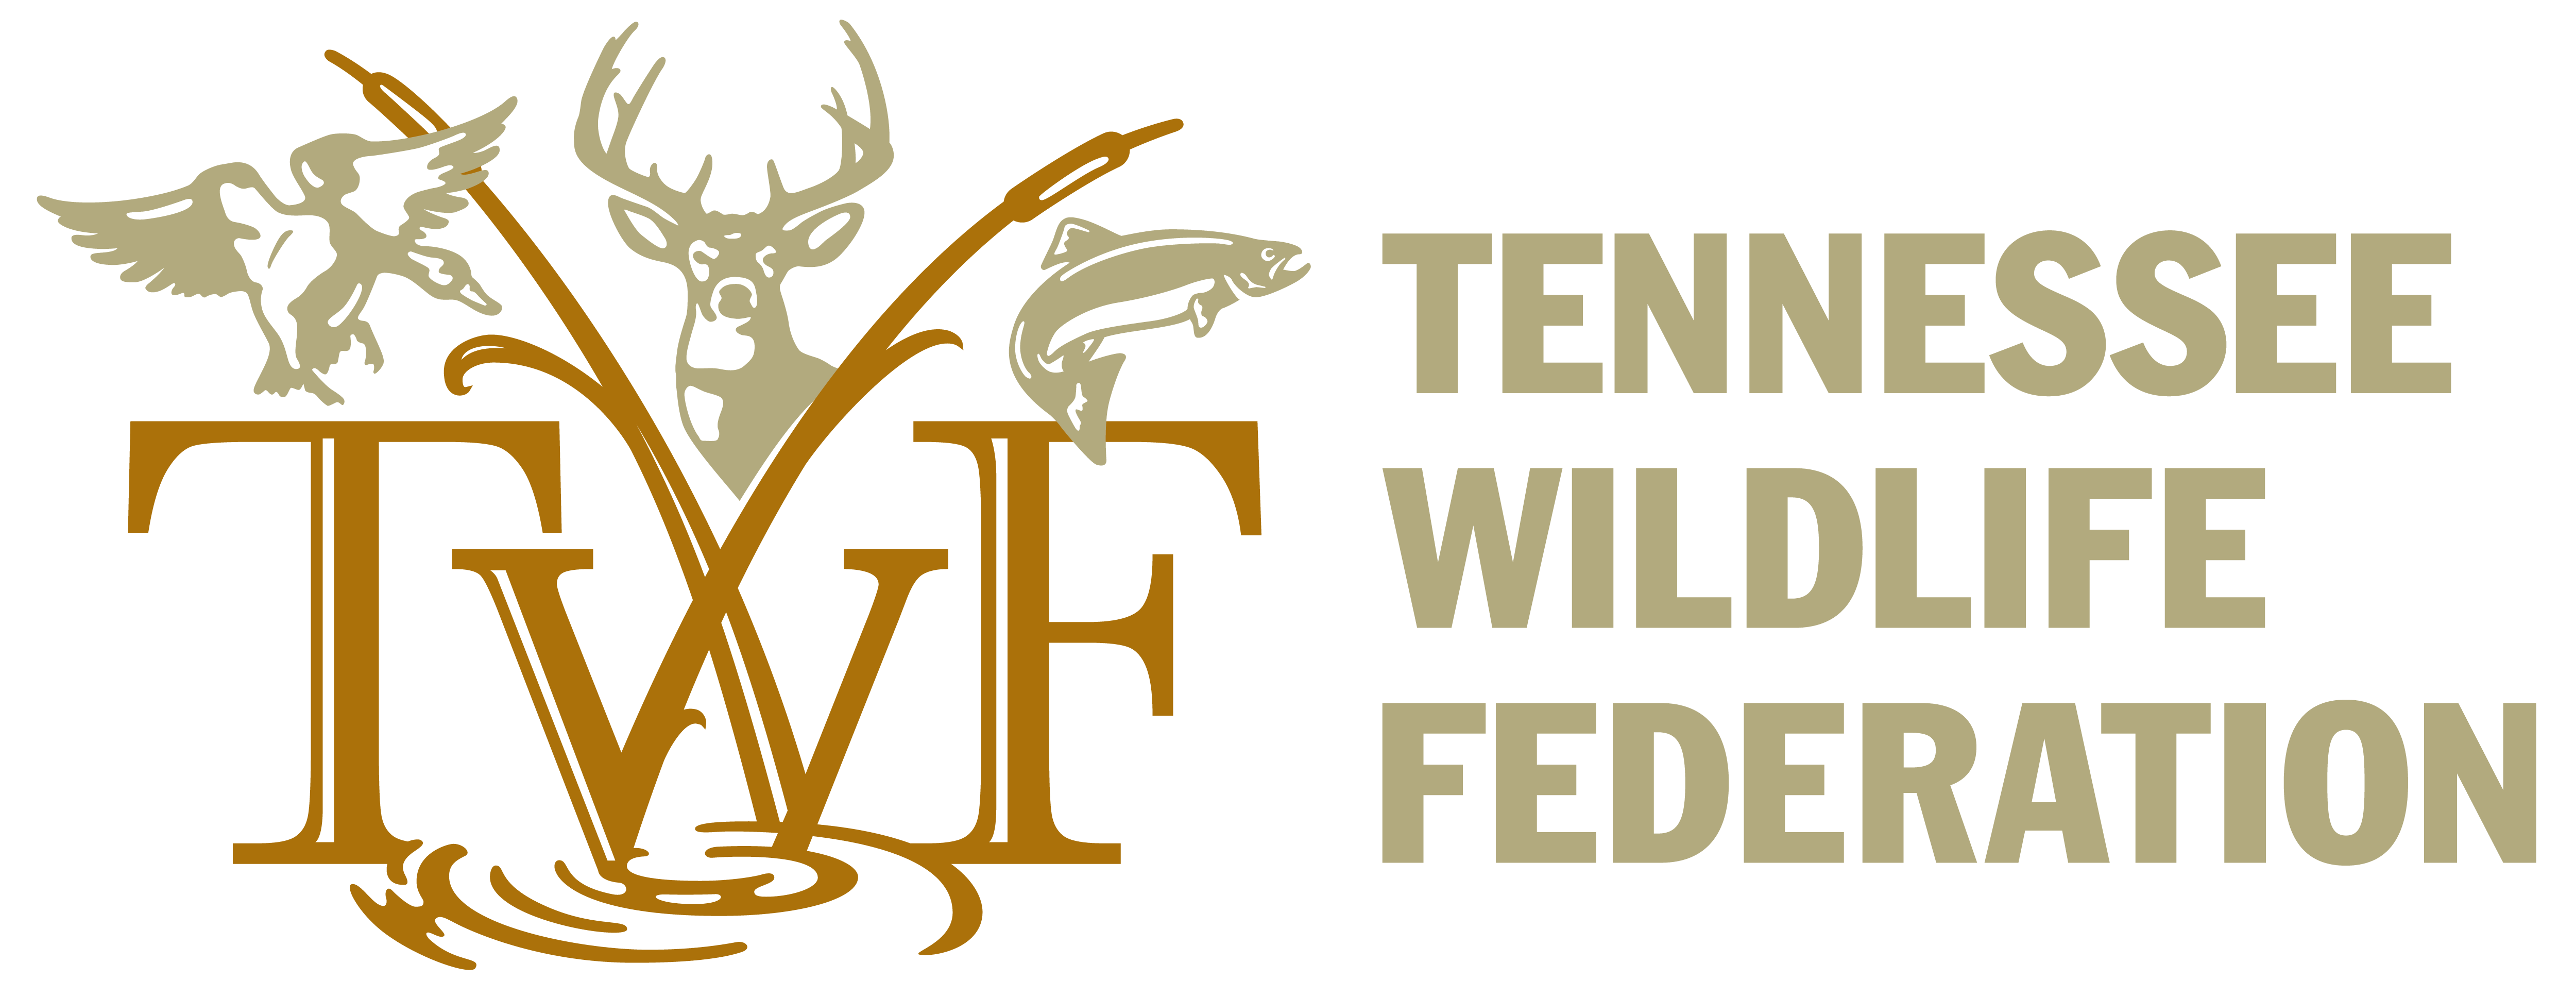 Tennessee Wildlife Federation logo